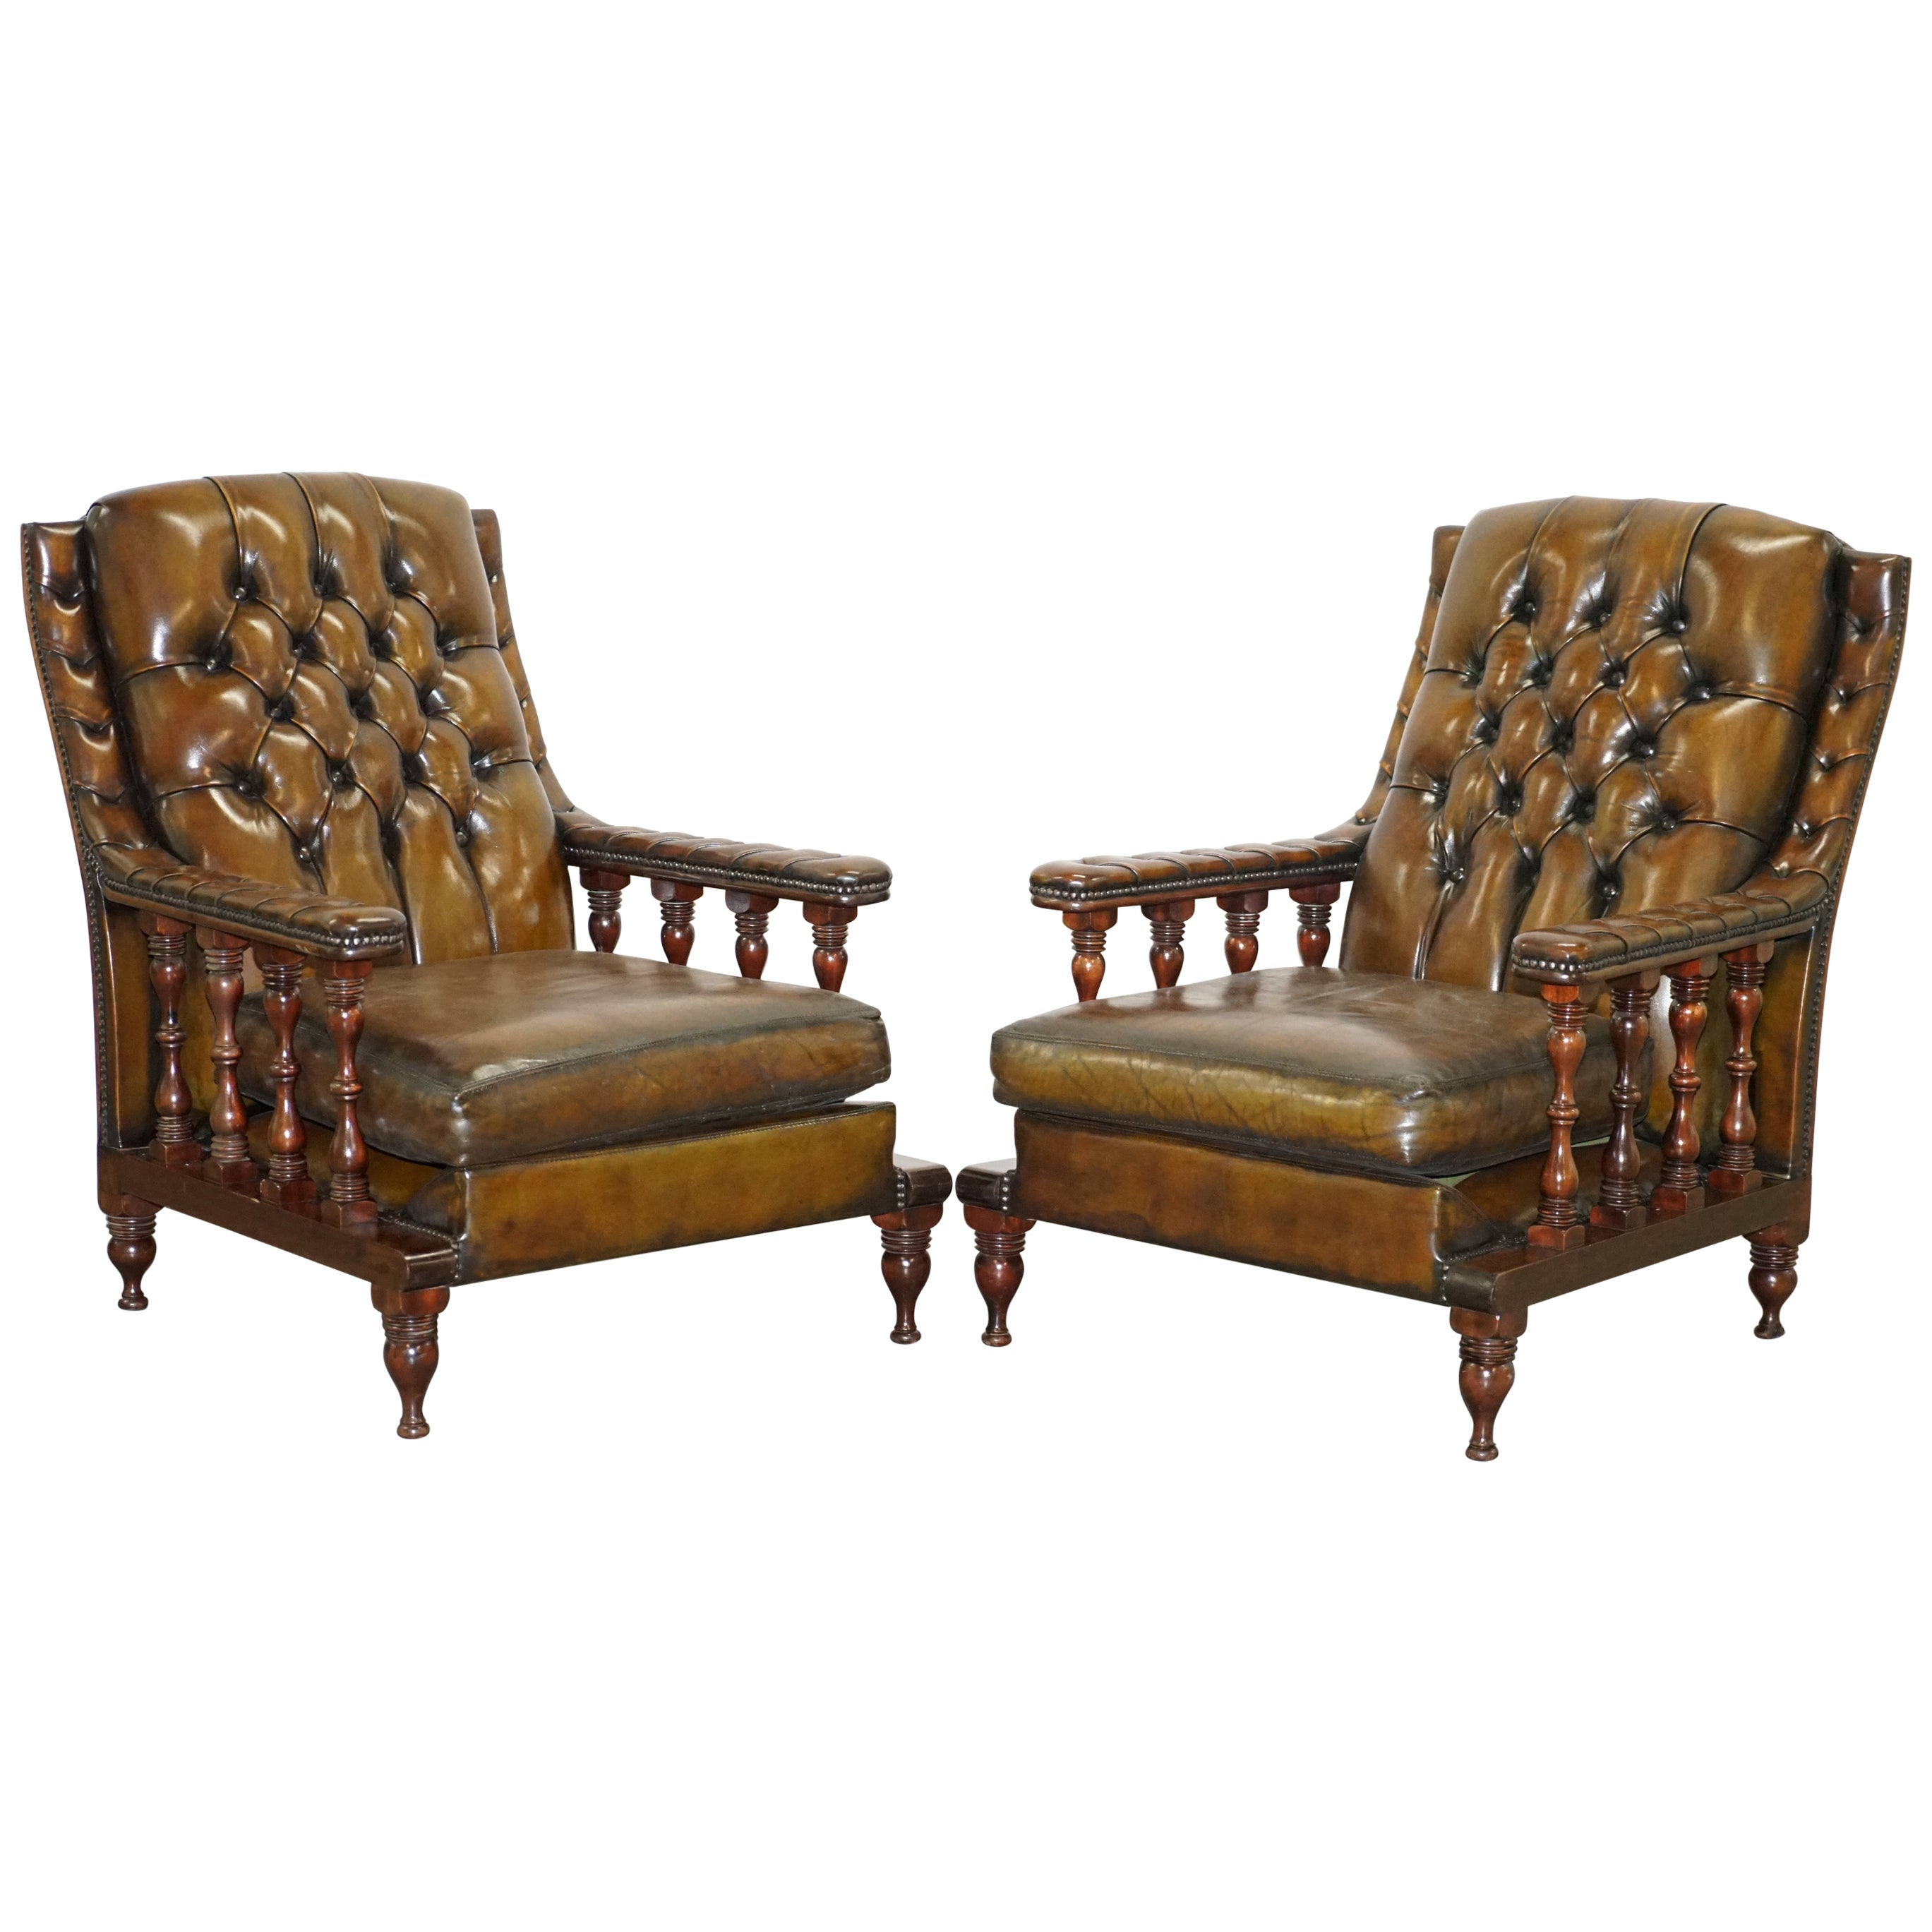 Pair of Restored Chesterfield Tufted Dutch Brown Leather Library Club Armchairs